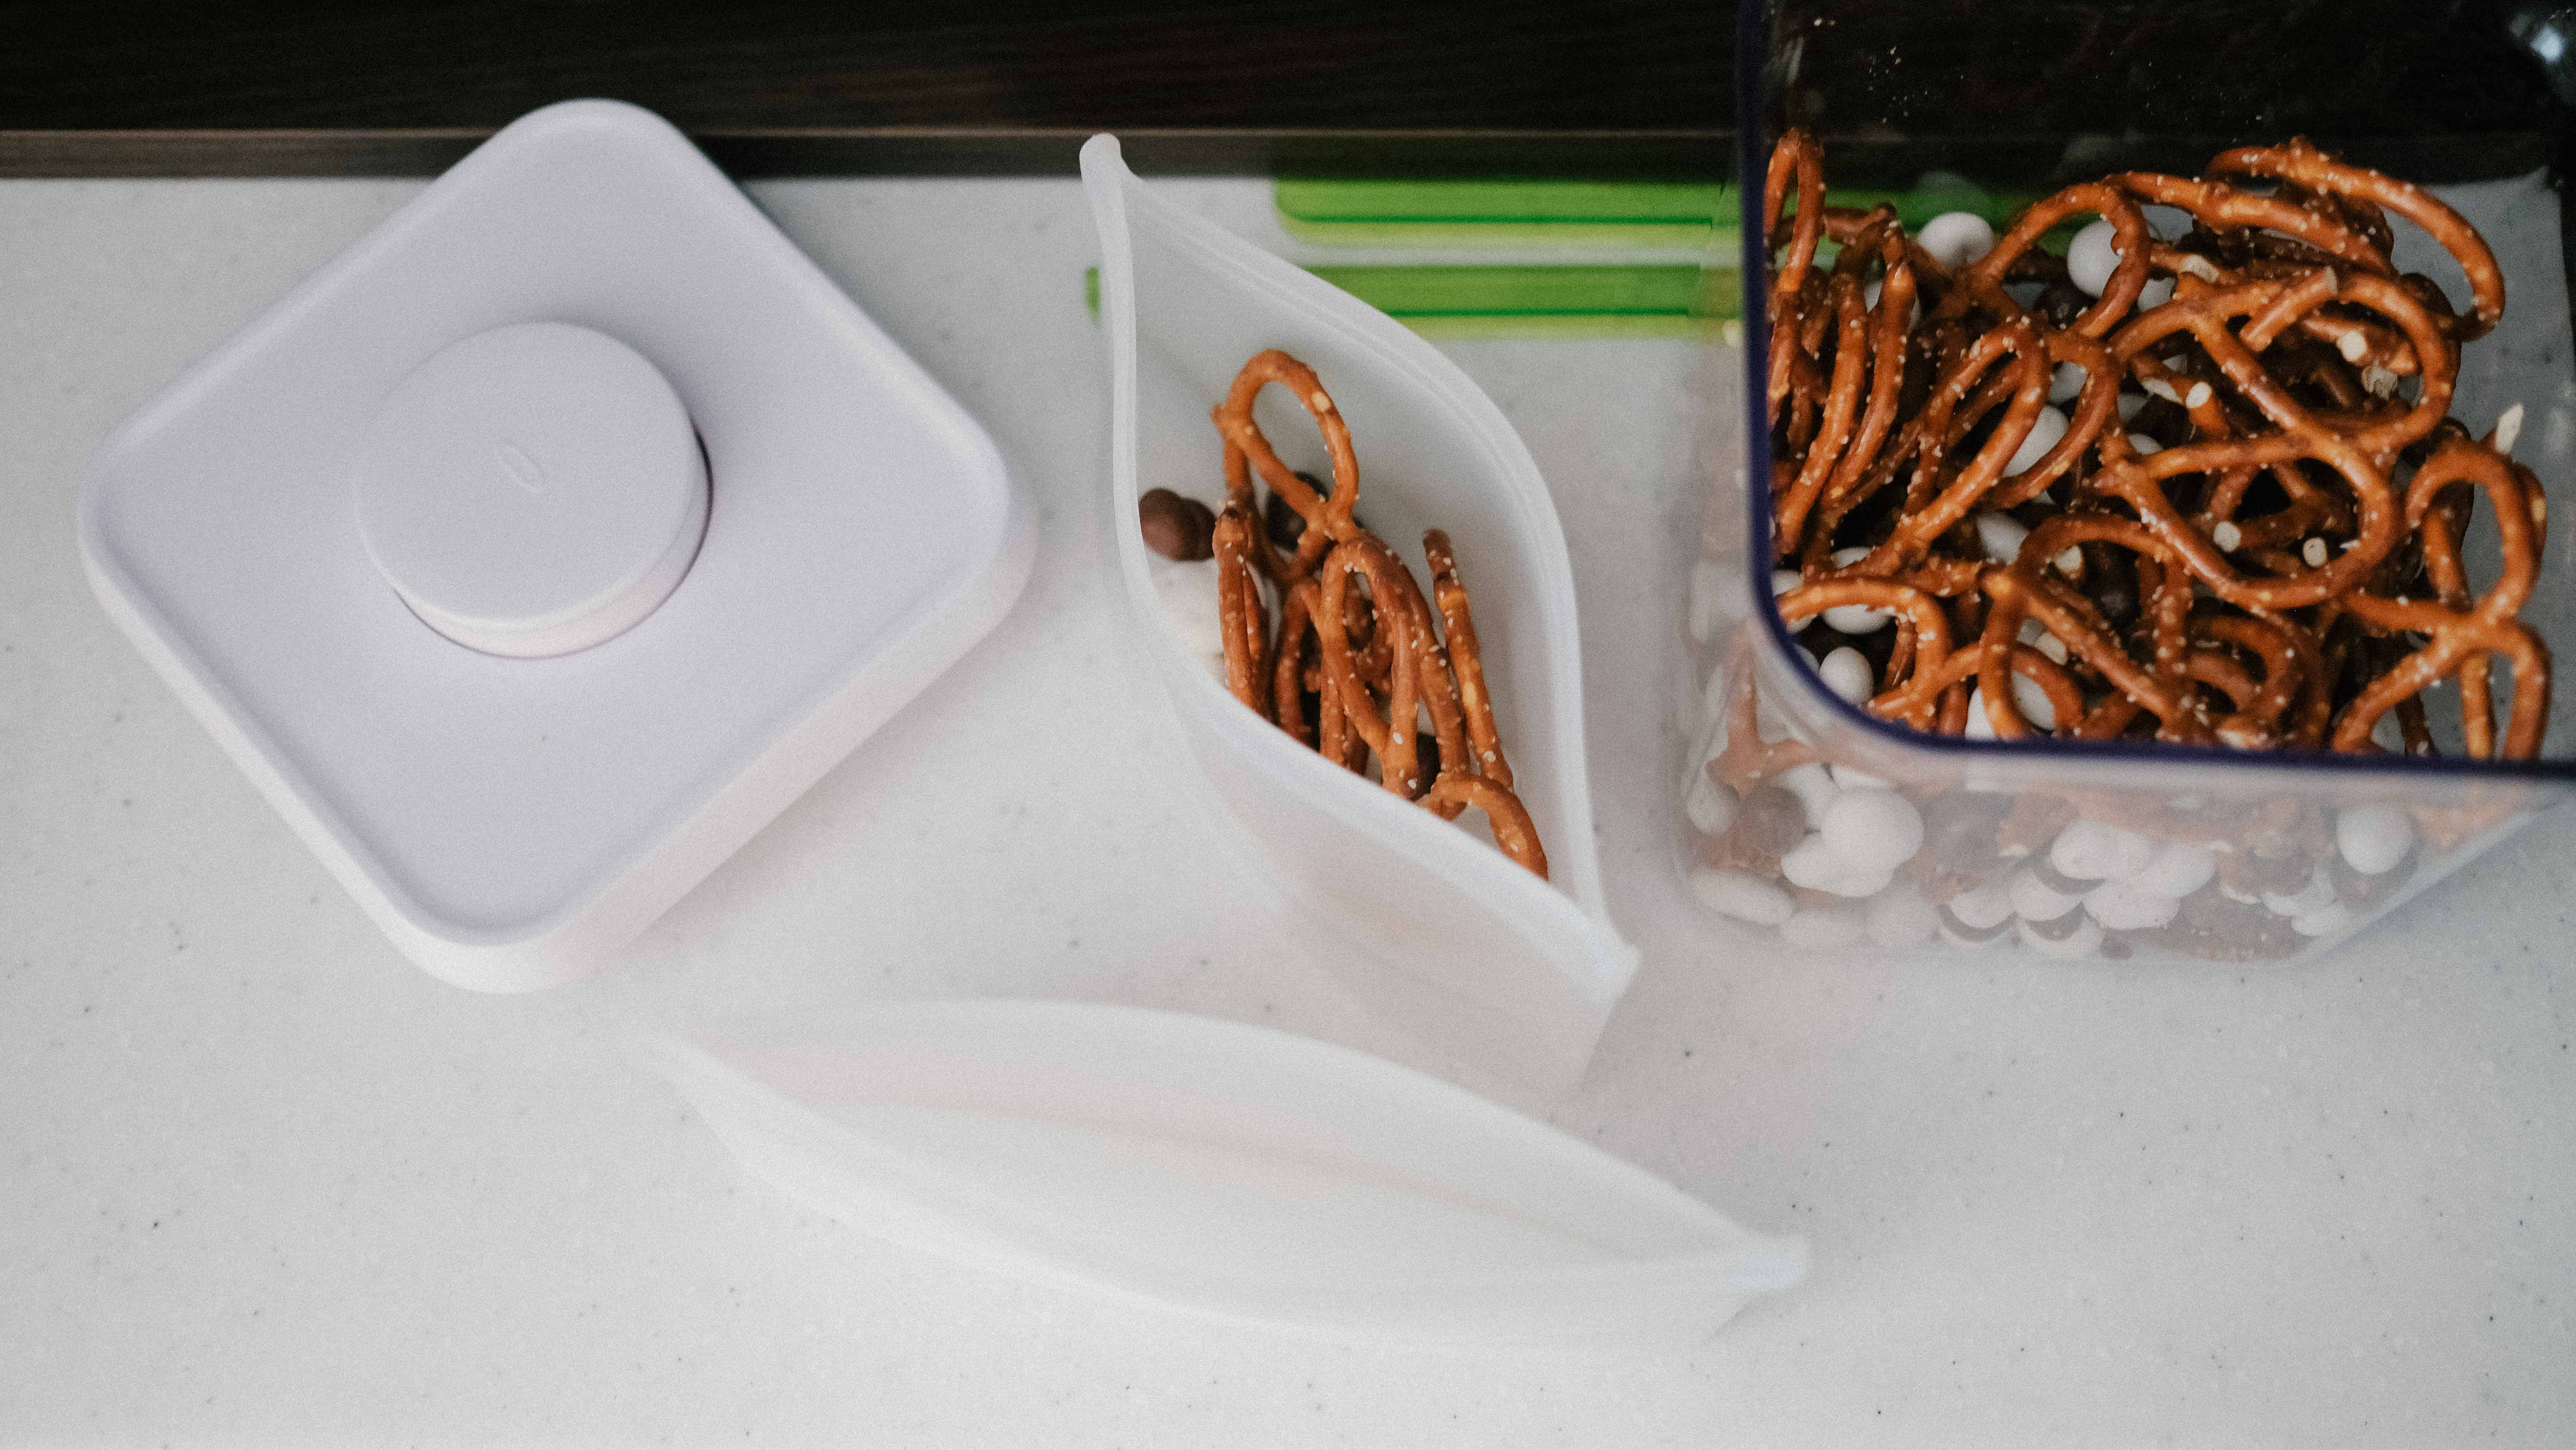 reusable silicone bag with pretzels for school snacks